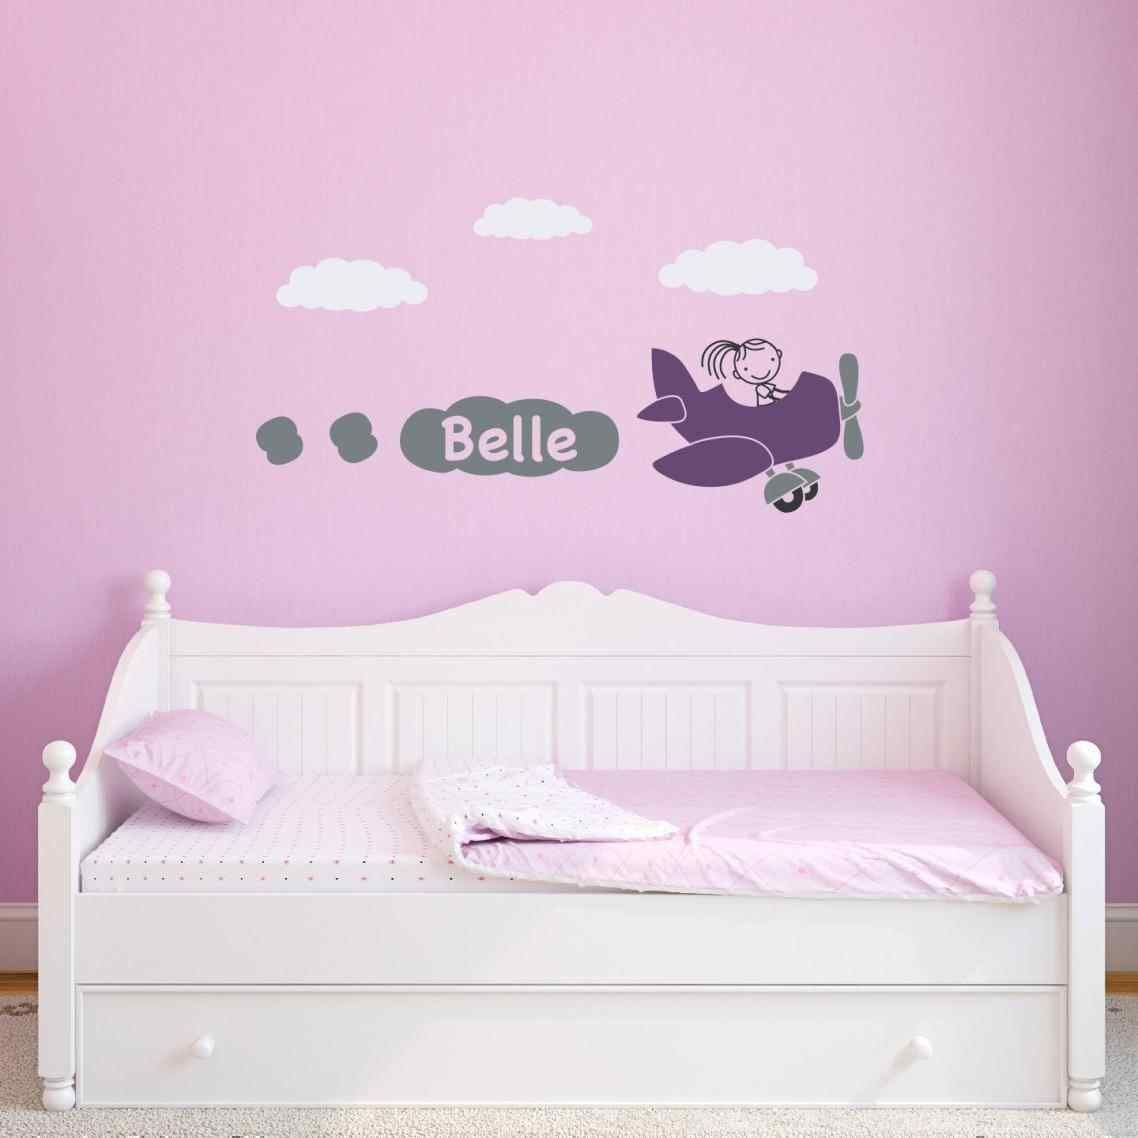 Master bedroom for single woman  wall decals for girl bedroom pj masks in wall crack kids boy girls